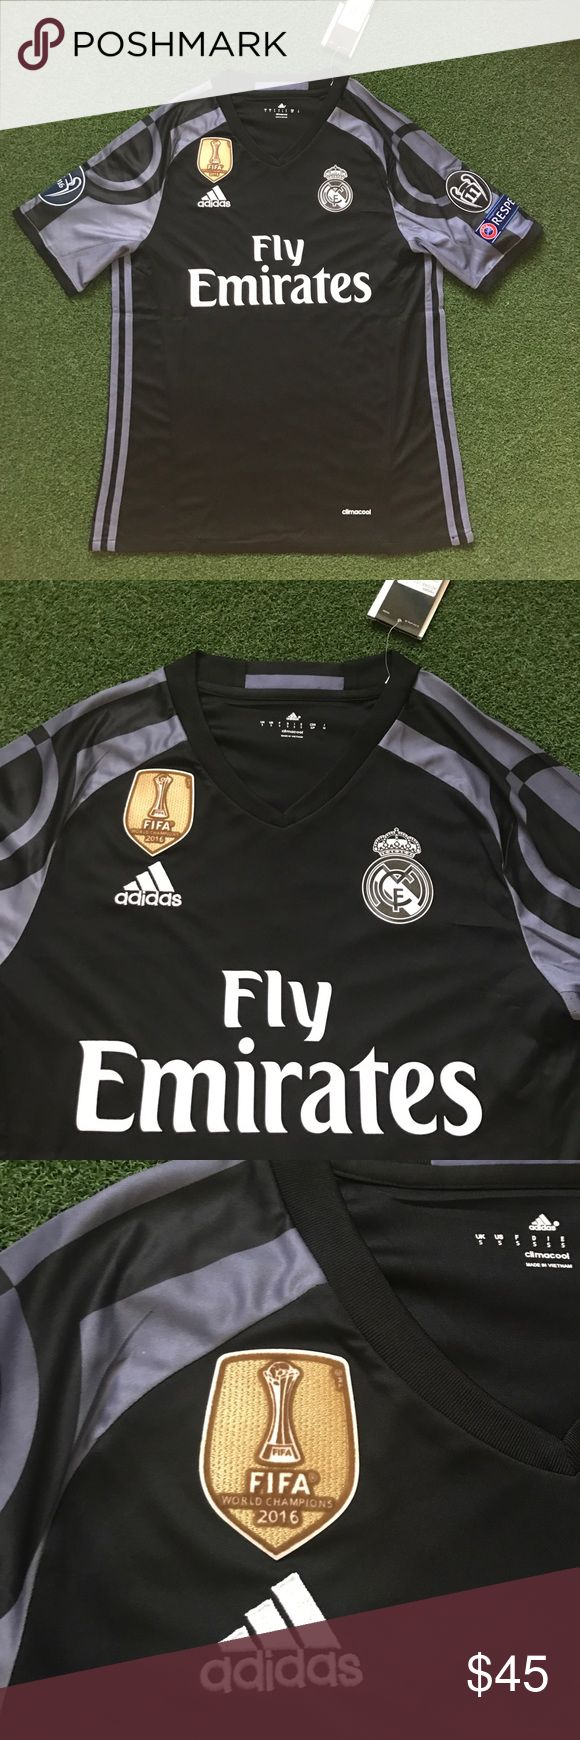 Real Madrid Soccer Jersey Black 2016/17 NO NAME New with tags! Men's adult sizes available! Black 2016/2017 short sleeve REAL MADRID Soccer Jersey with no name and no number! Futbol - la liga - champions league patches - gold FIFA world champions patch Shirts Tees - Short Sleeve